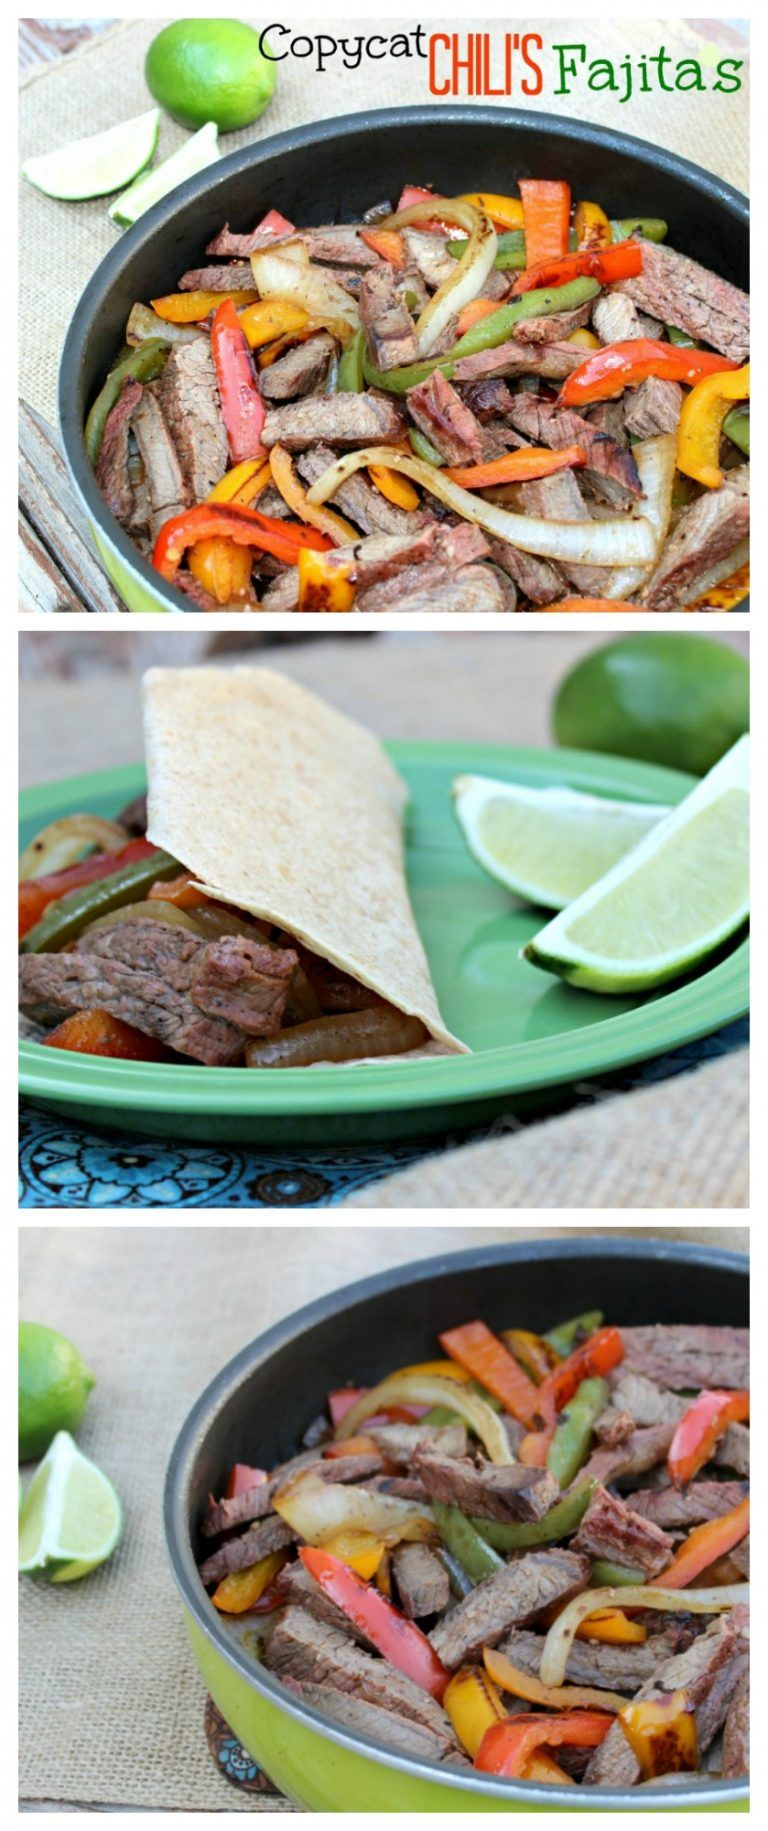 With this Copycat Chili's Steak Fajitas Recipe you can make your favorite Mexican restaurant meal at home! The secret is in the yummy marinade and cooking on the grill. #steakfajitarecipe